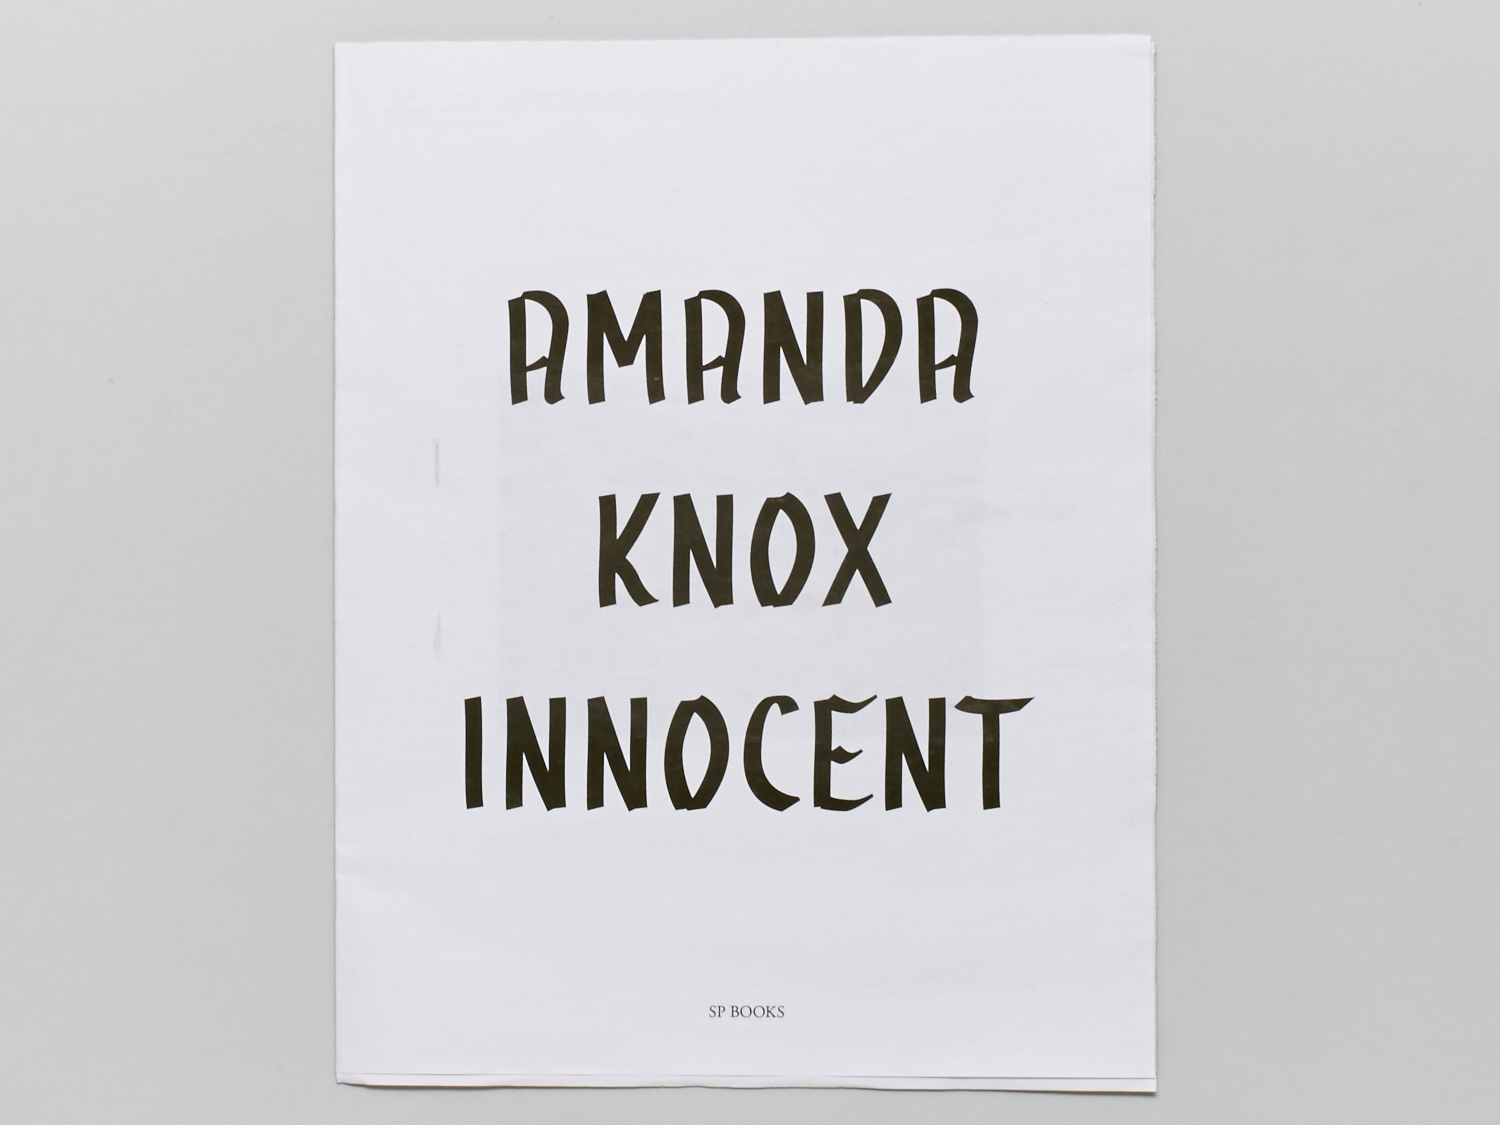 AMANDA KNOX INNOCENT AND GUILTY